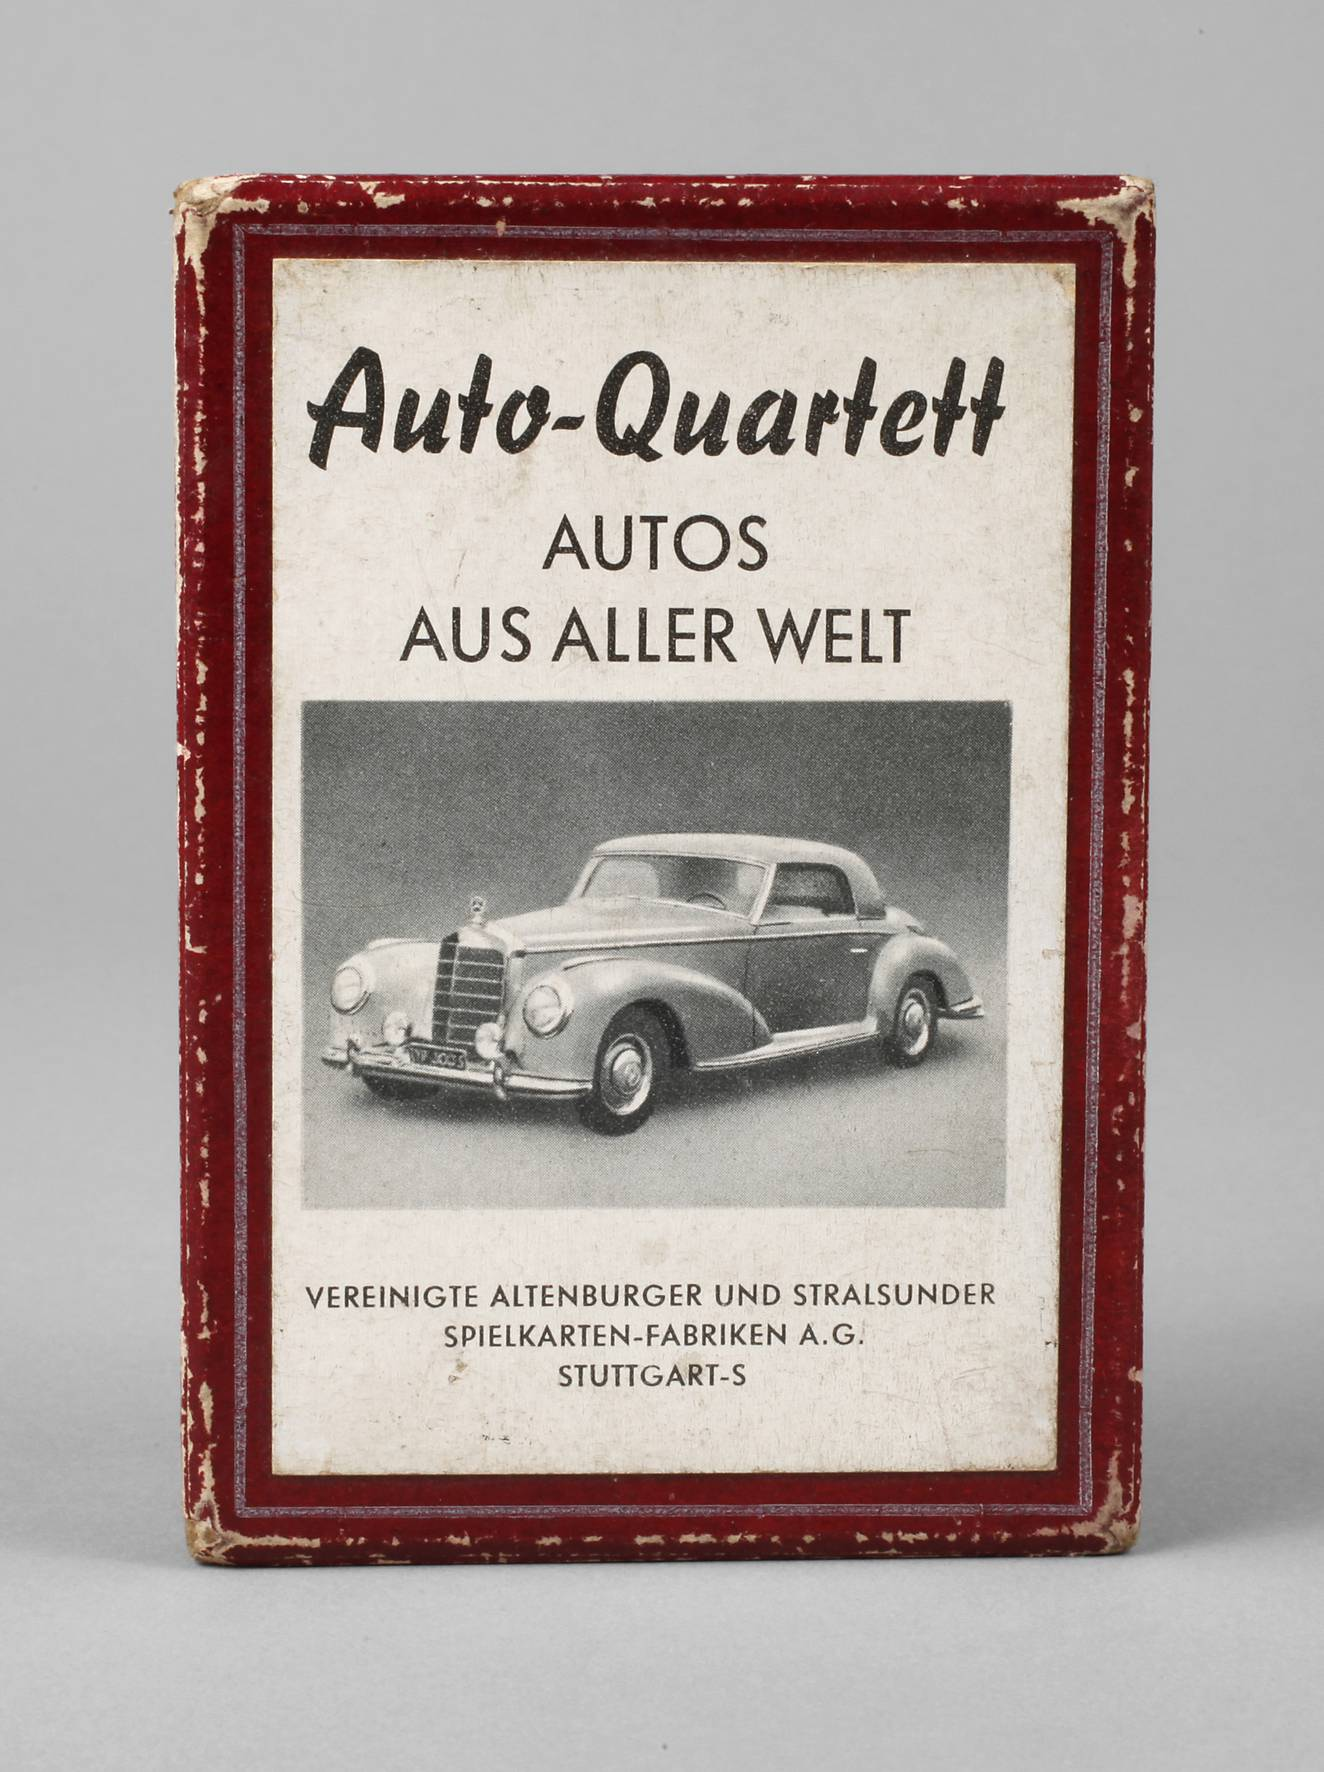 ASS Auto-Quartett